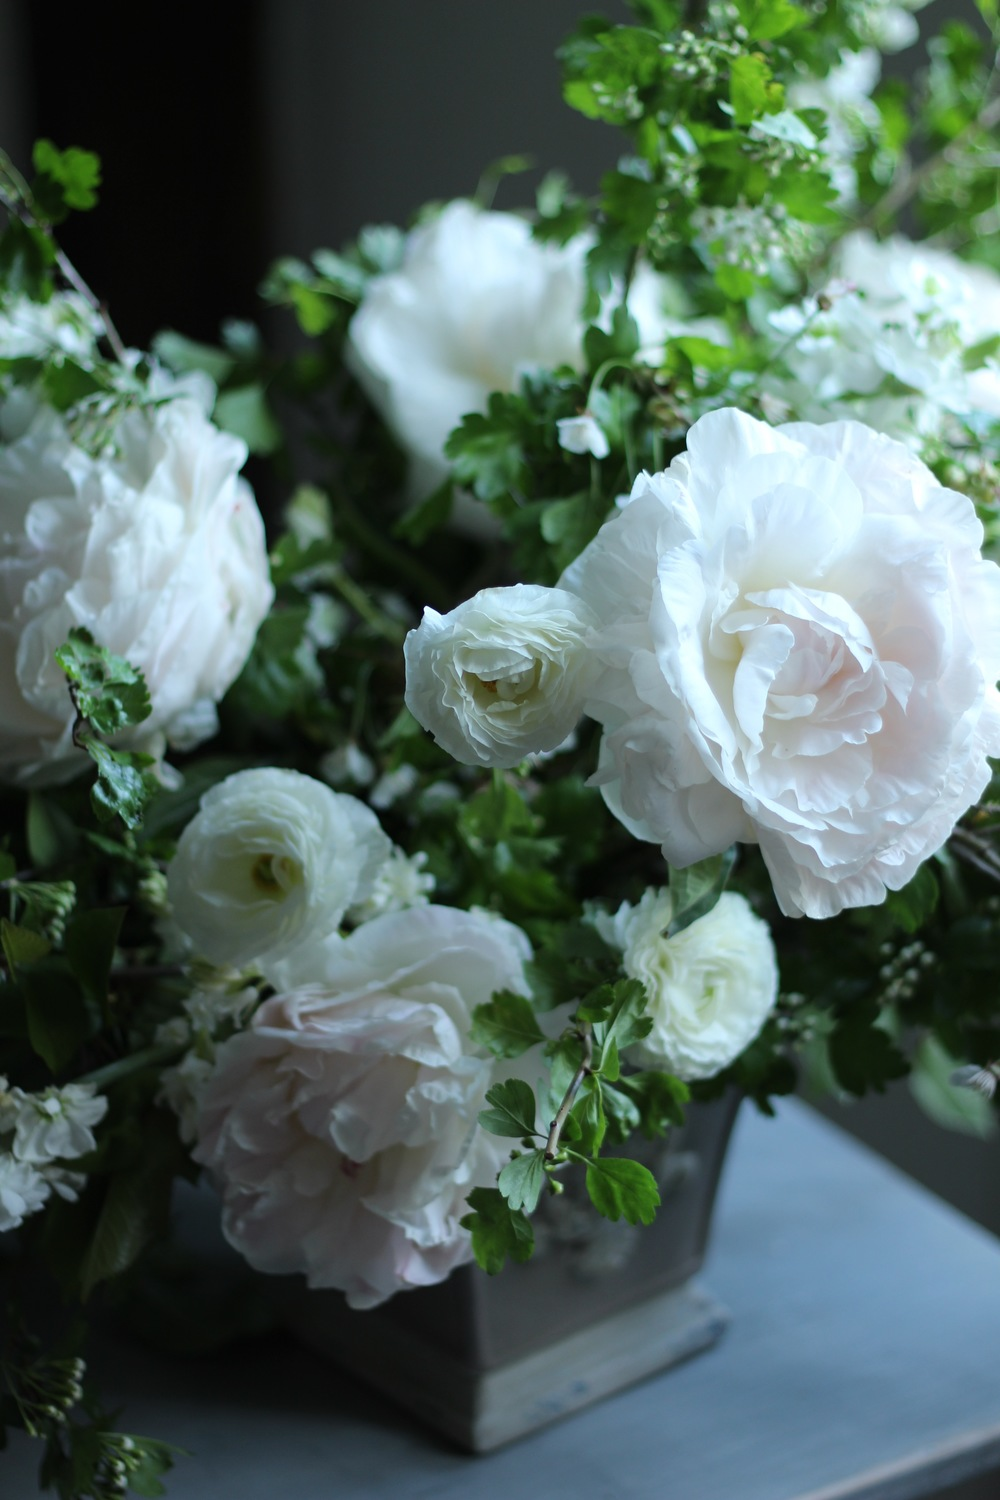 vase arrangement by Jennifer Pinder a London and Kent wedding flowers florist. Blush pink peonies with white ranunculus